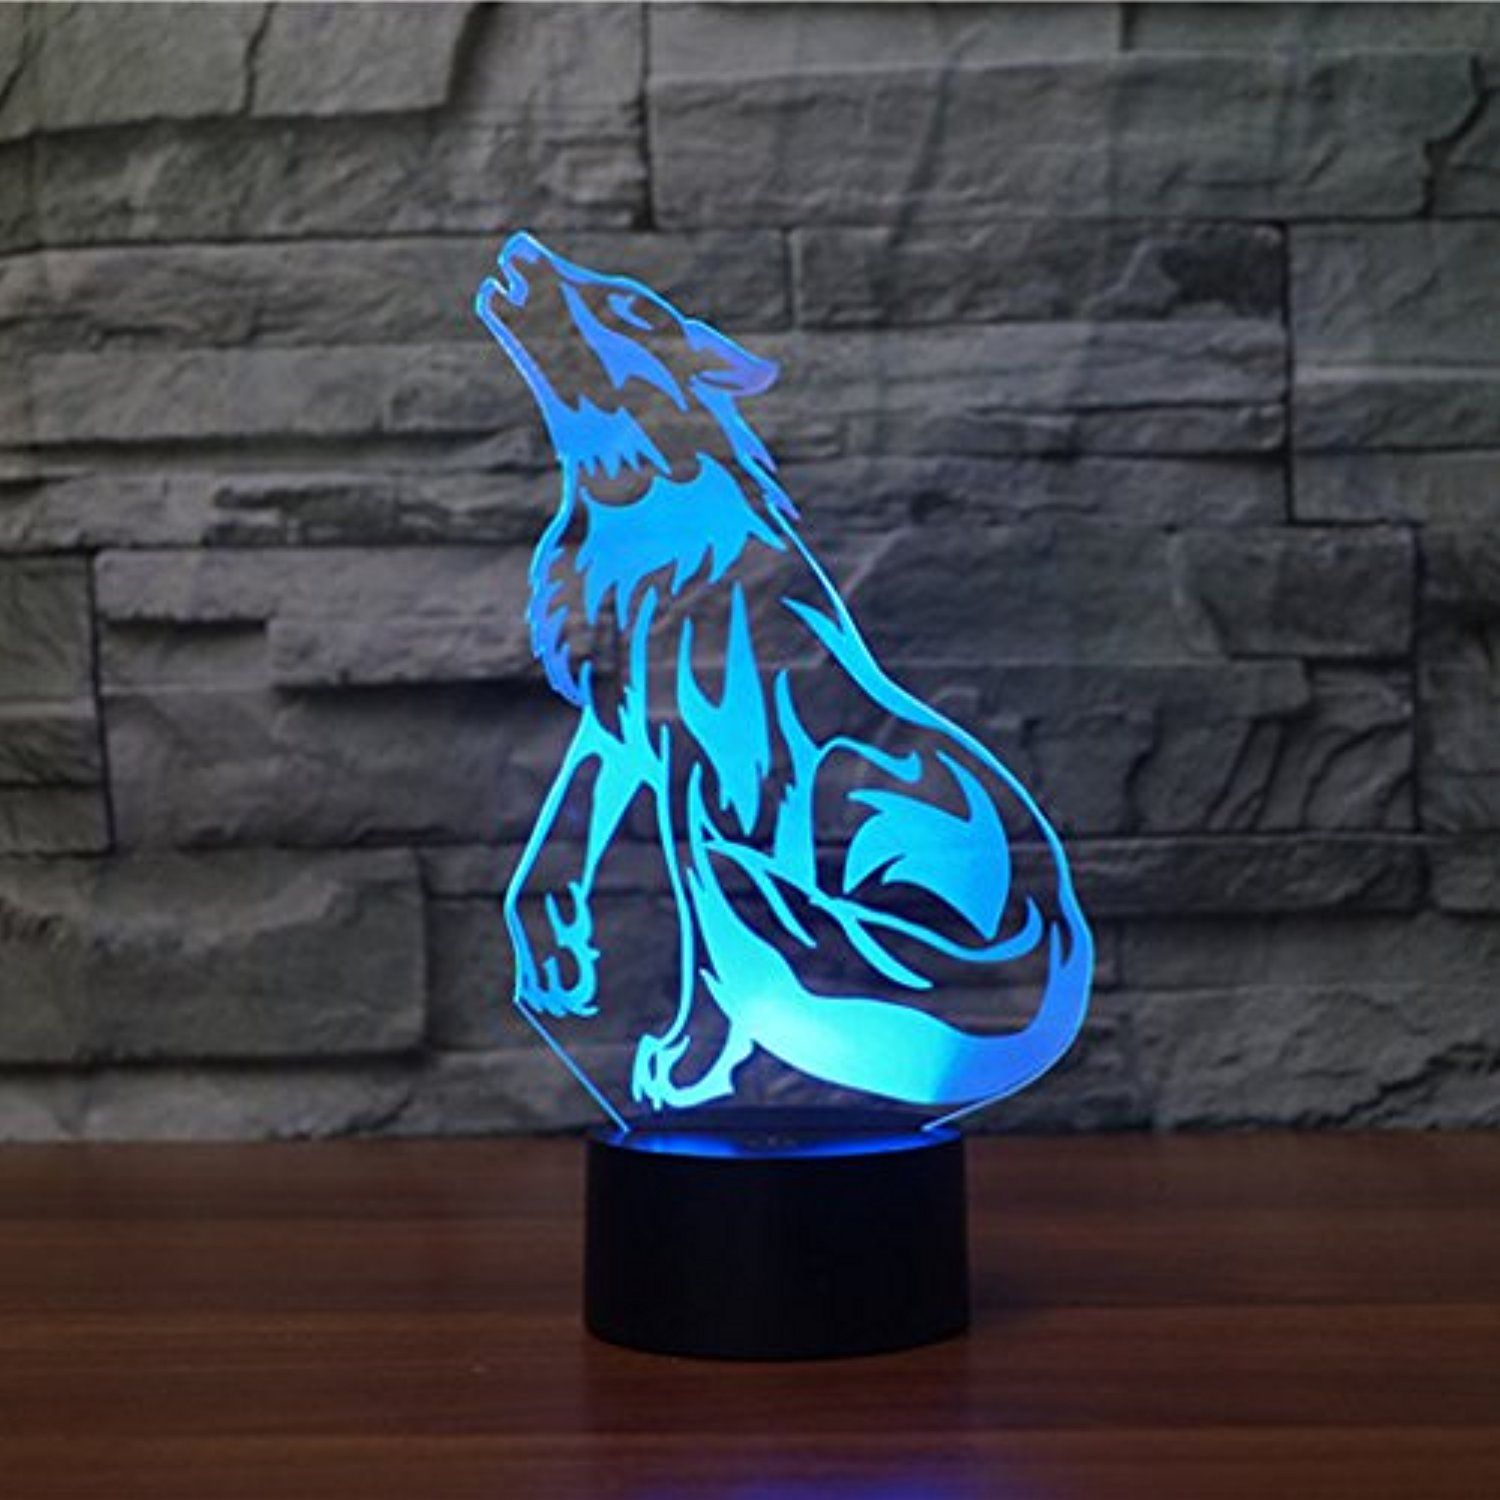 Wolf 3d Lamp Optical Illusion Night Light Gawell 7 Color Changing Touch Switch Table Desk Decoration Lamps P 3d Night Light 3d Led Night Light Led Night Light